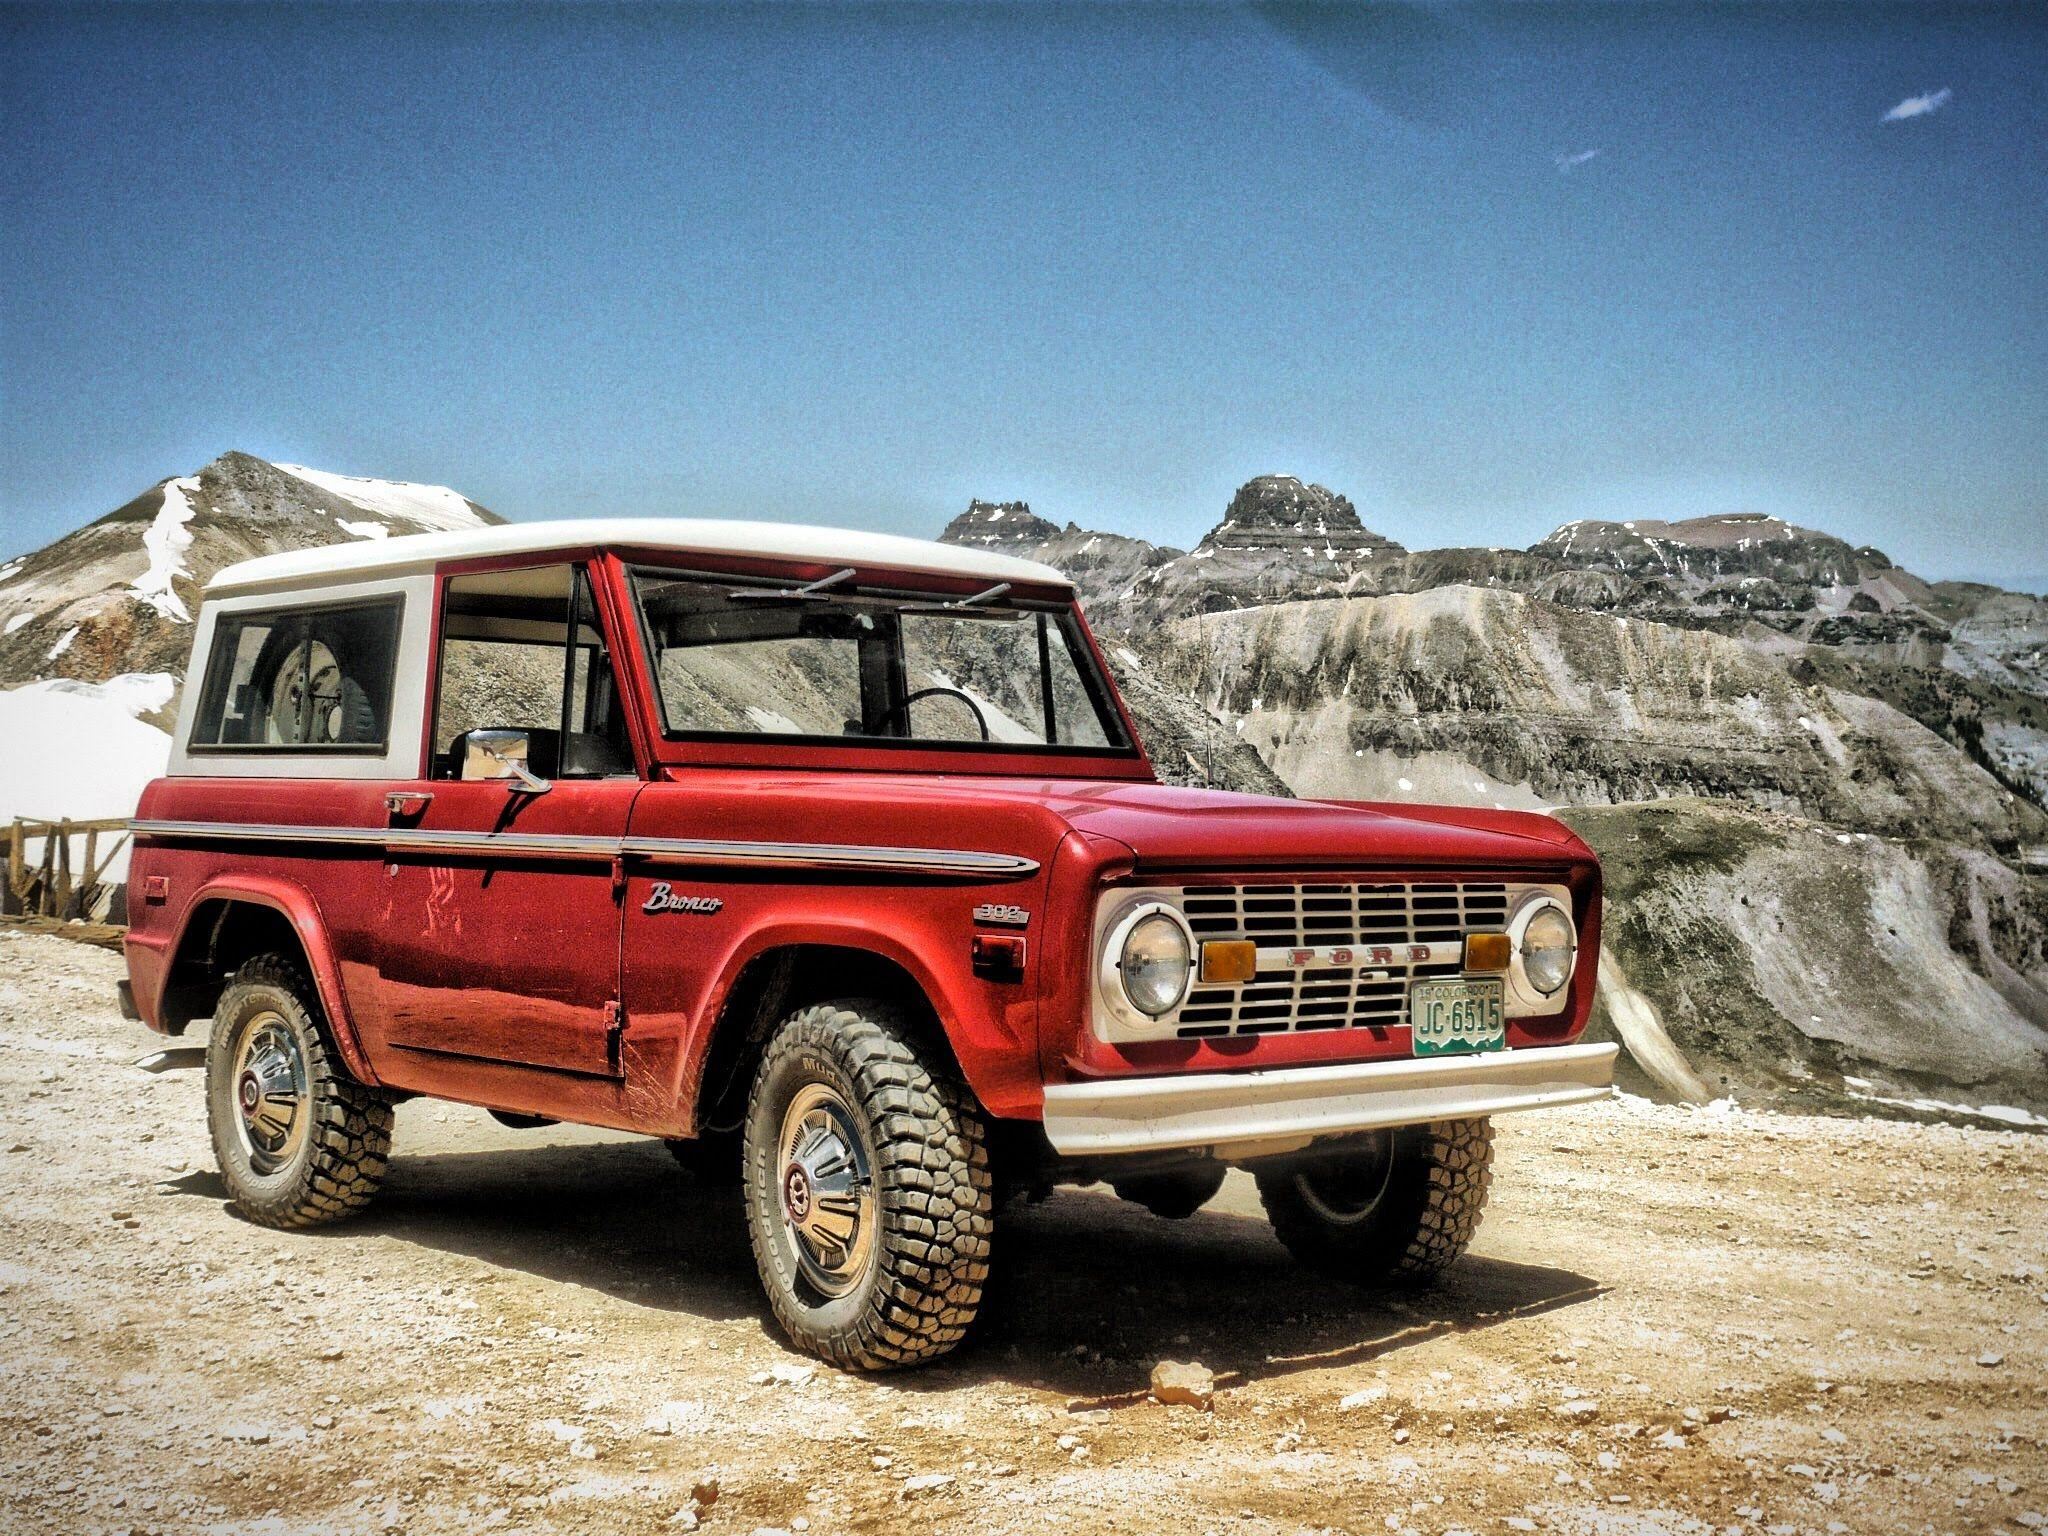 Ford Bronco Wallpapers 10 - 2048 X 1536 | stmed.net